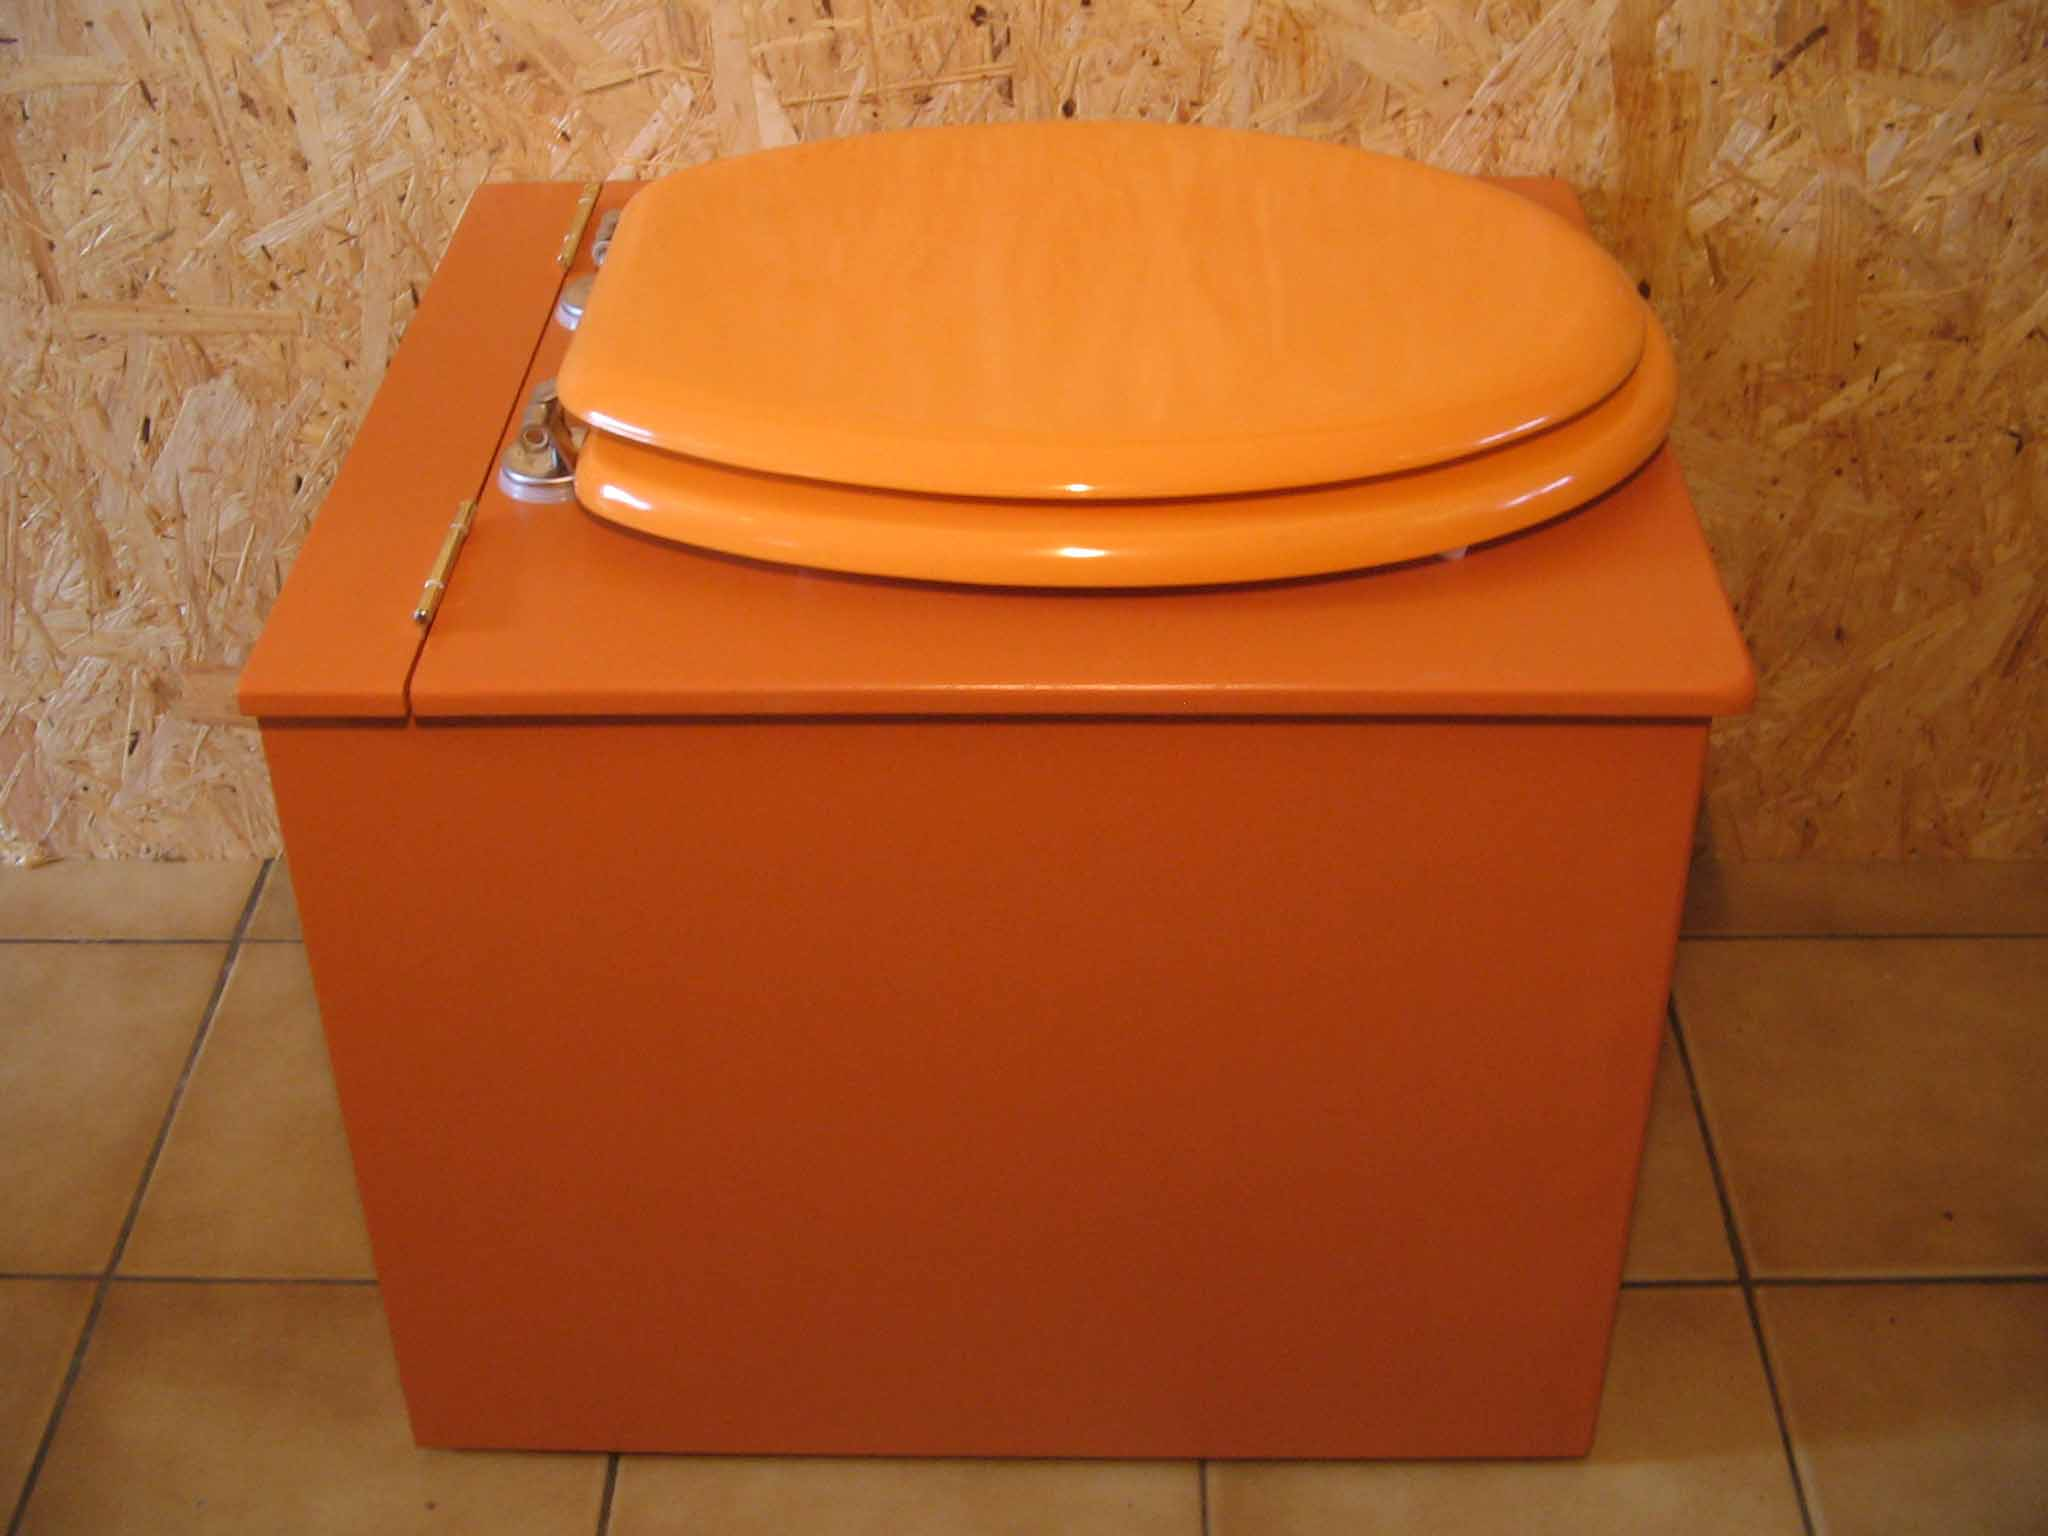 toilettes sèches originales orange